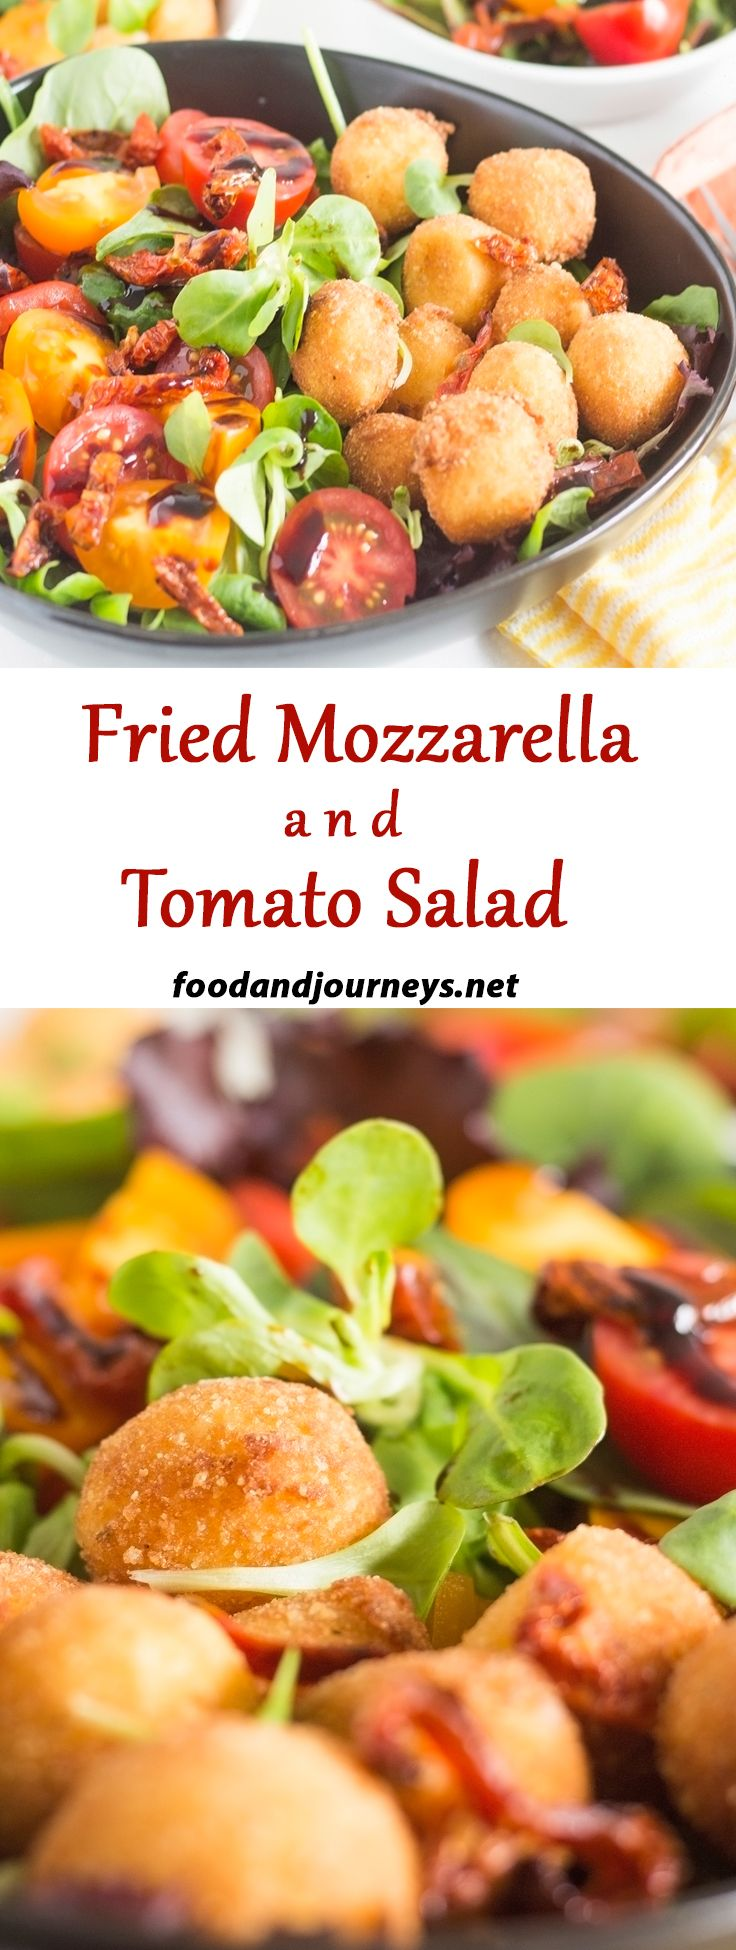 A salad that can be served as an appetizer or main dish! Tomatoes, leafy greens and fried mozzarella balls! Filling and satisfying!